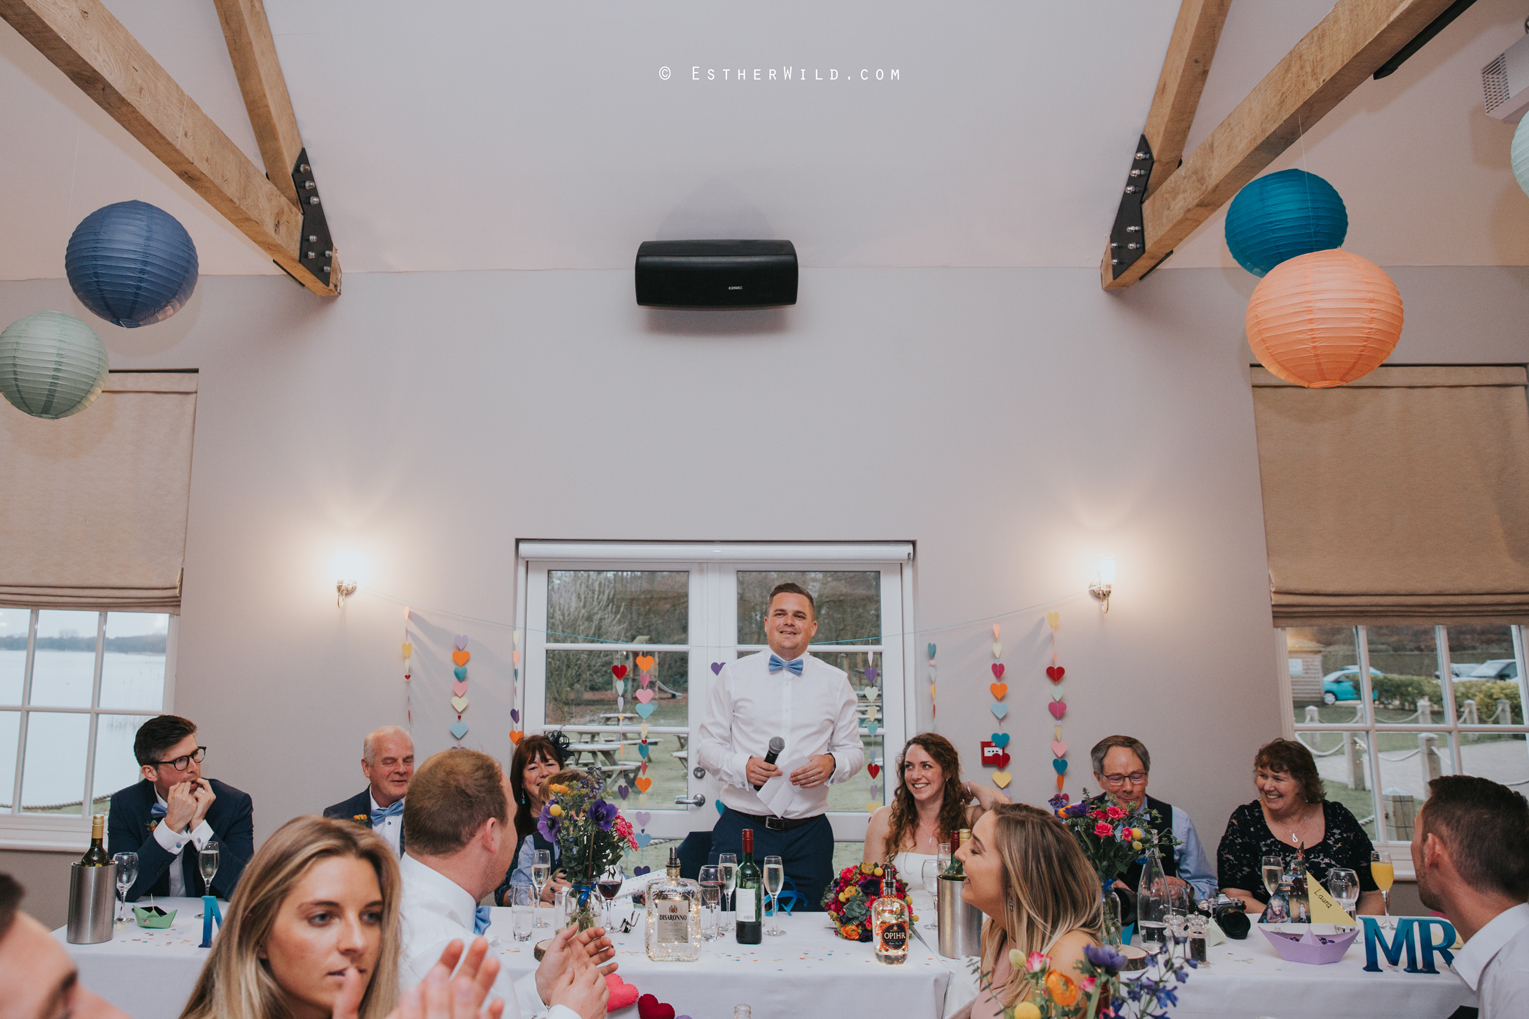 The_BoatHouse_Wedding_Venue_Ormesby_Norfolk_Broads_Boat_Wedding_Photography_Esther_Wild_Photographer_IMG_3107.jpg